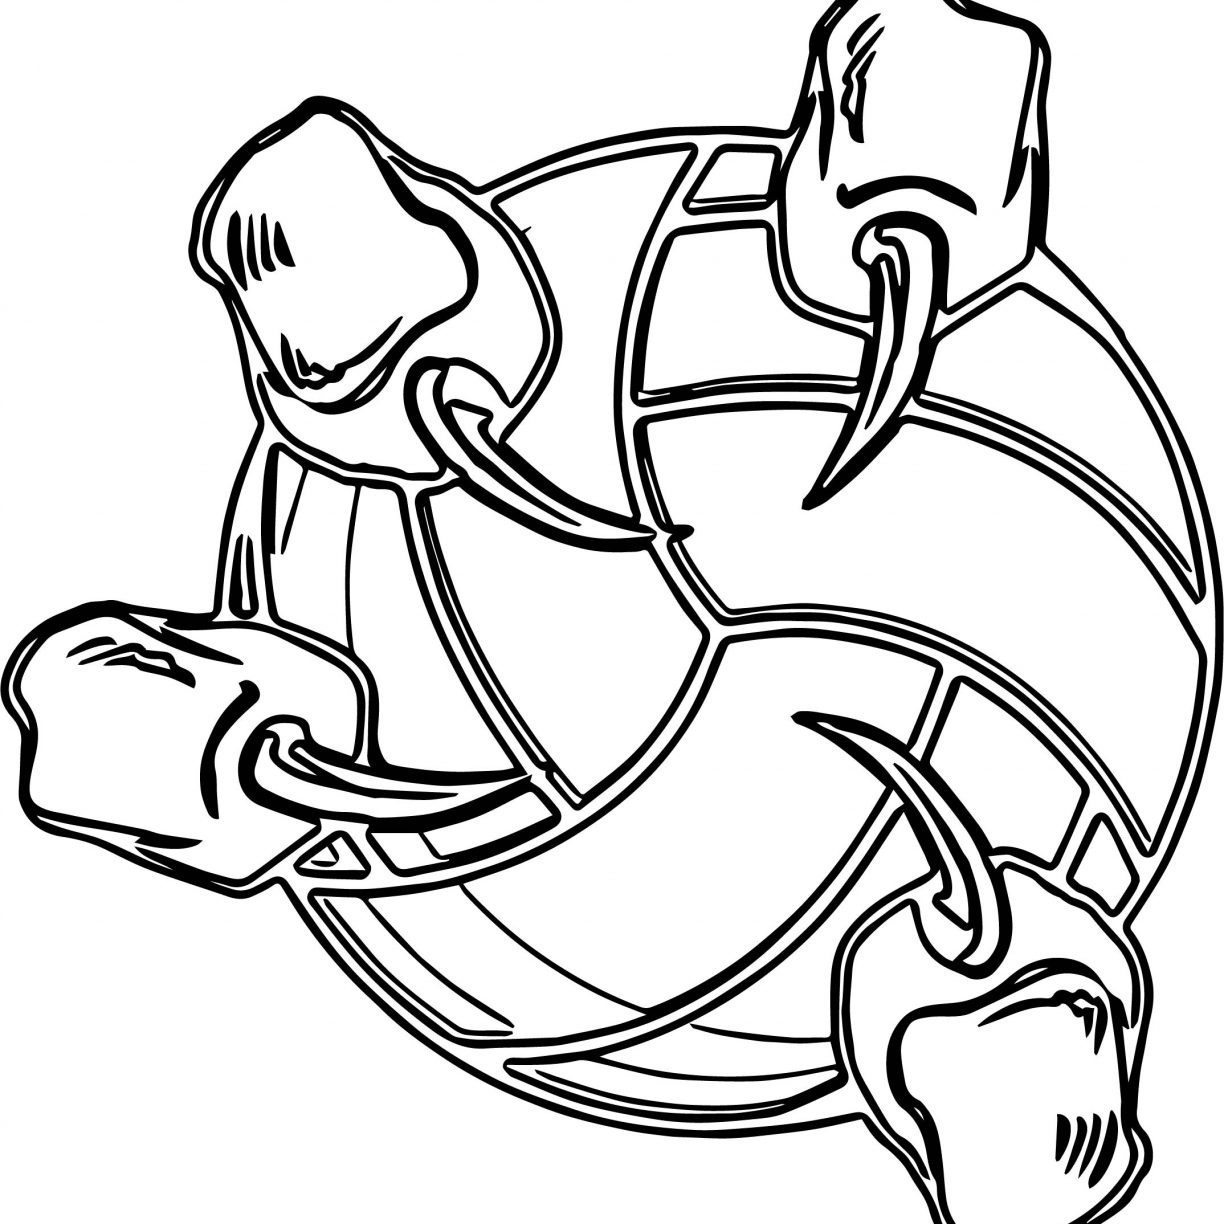 1224x1224 Excellent Volleyball Coloring Pages Free Sports To Print Fresh